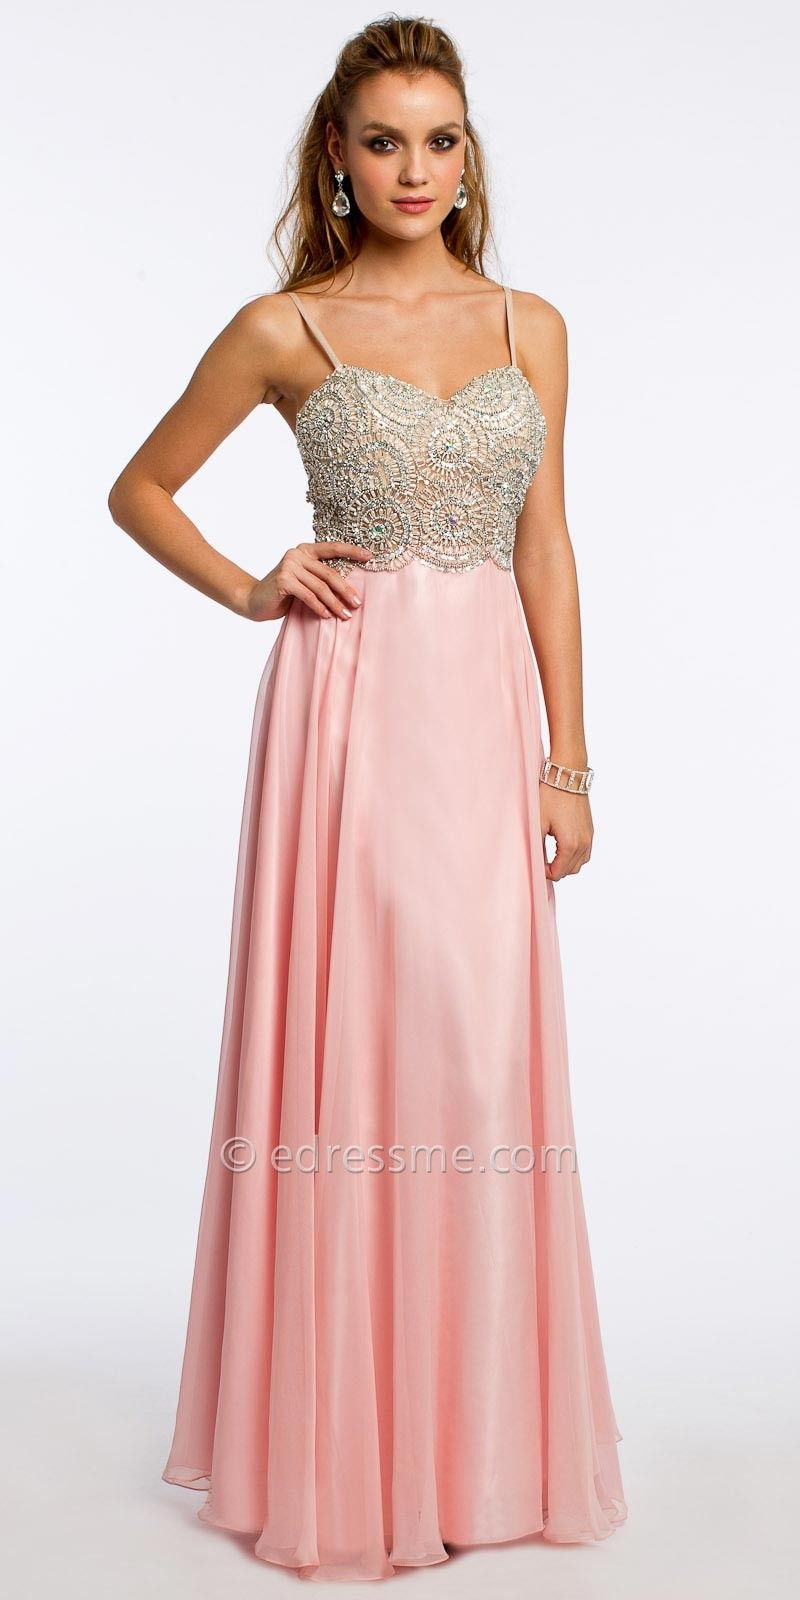 Beaded Kaleidoscope Evening Dress By Camille La Vie | Prom ...